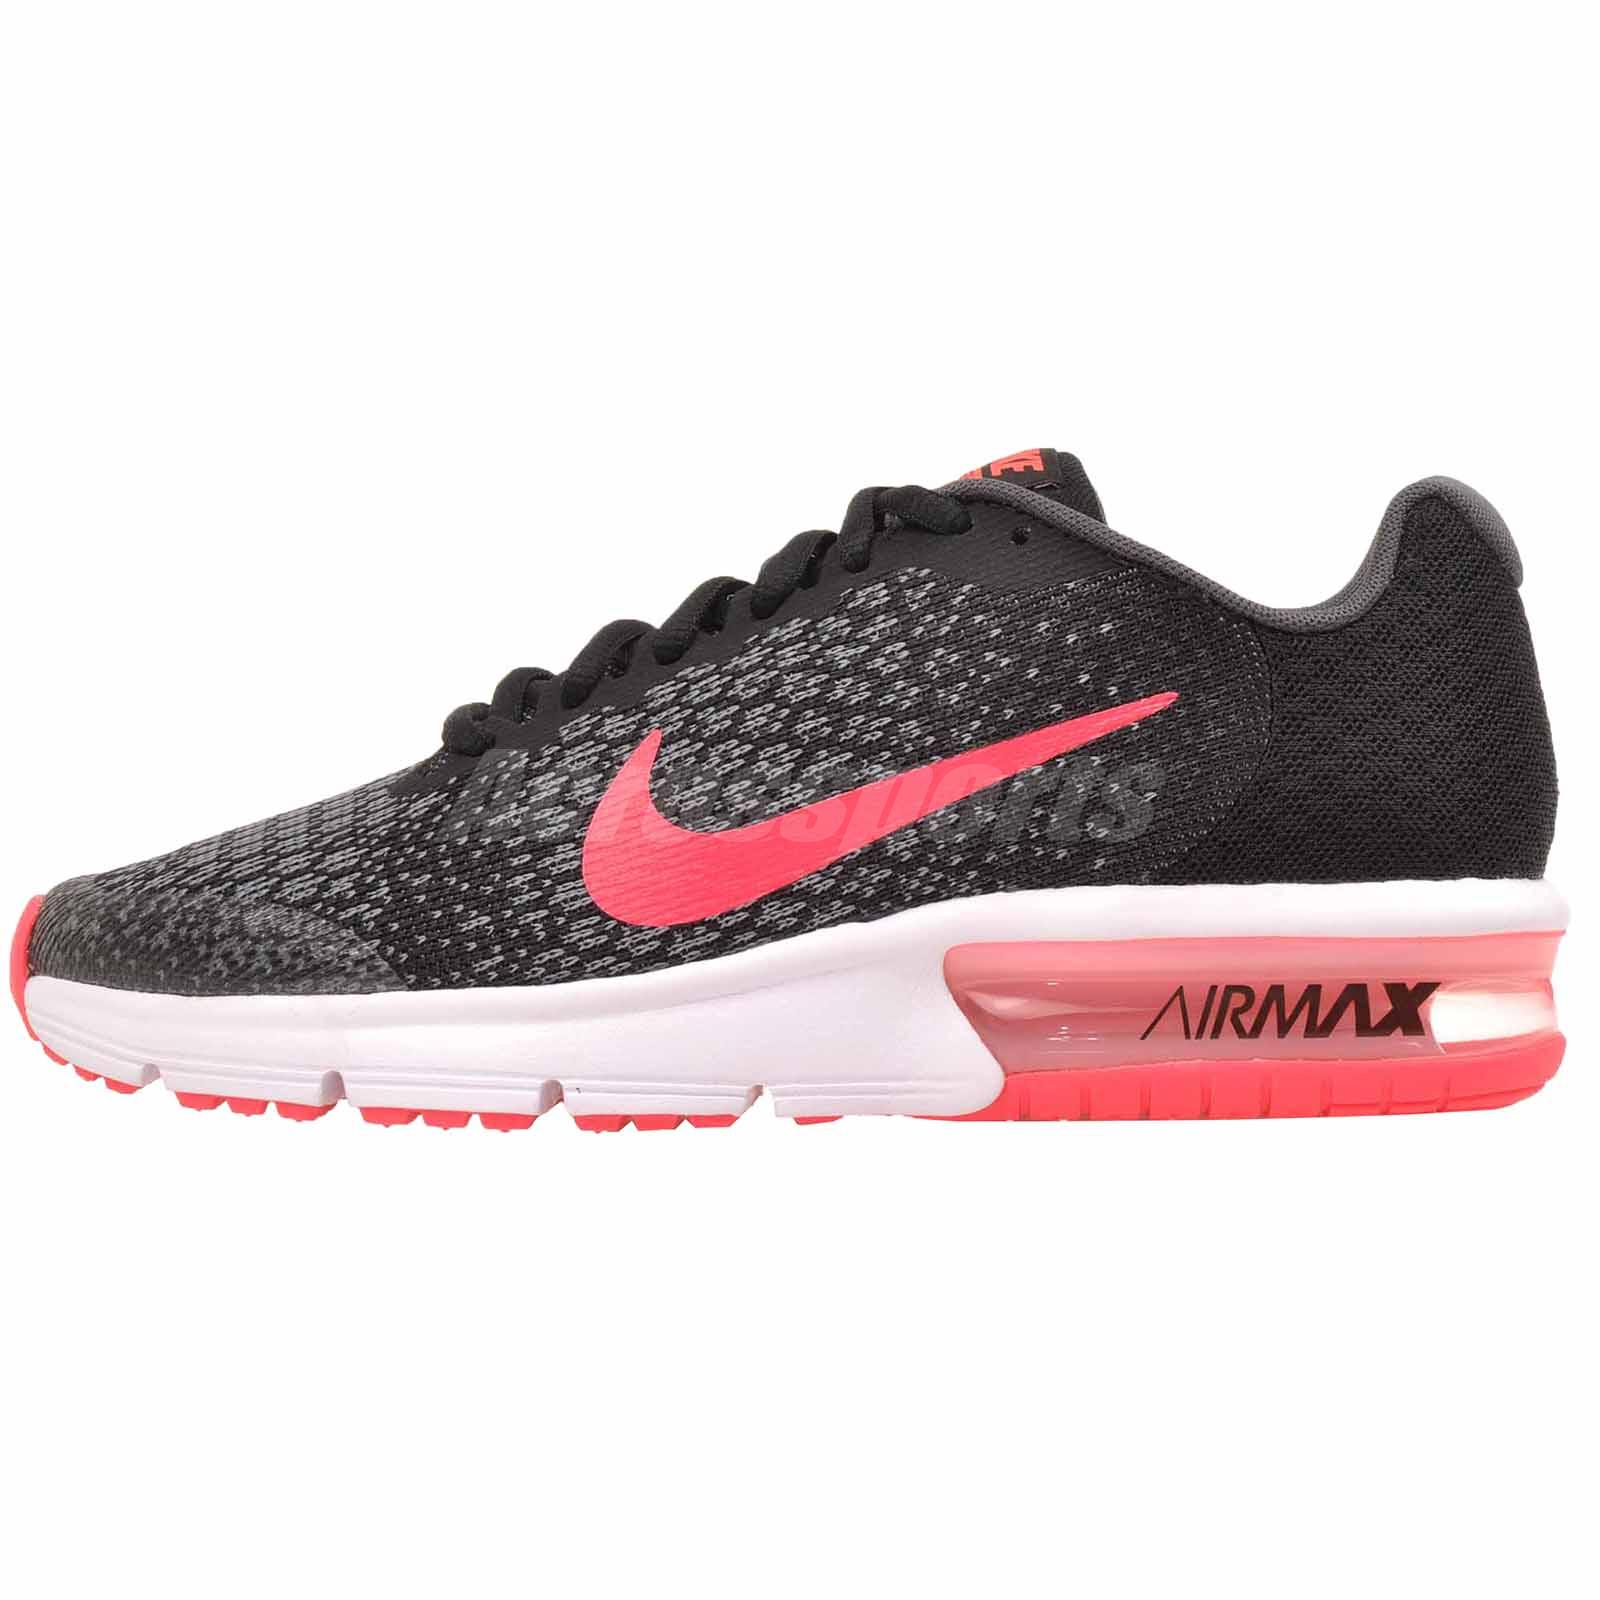 Nike Air Max Sequent 2 GS Running Kids Youth Womens Shoes Black Pink  869994-005 b9eab02f4